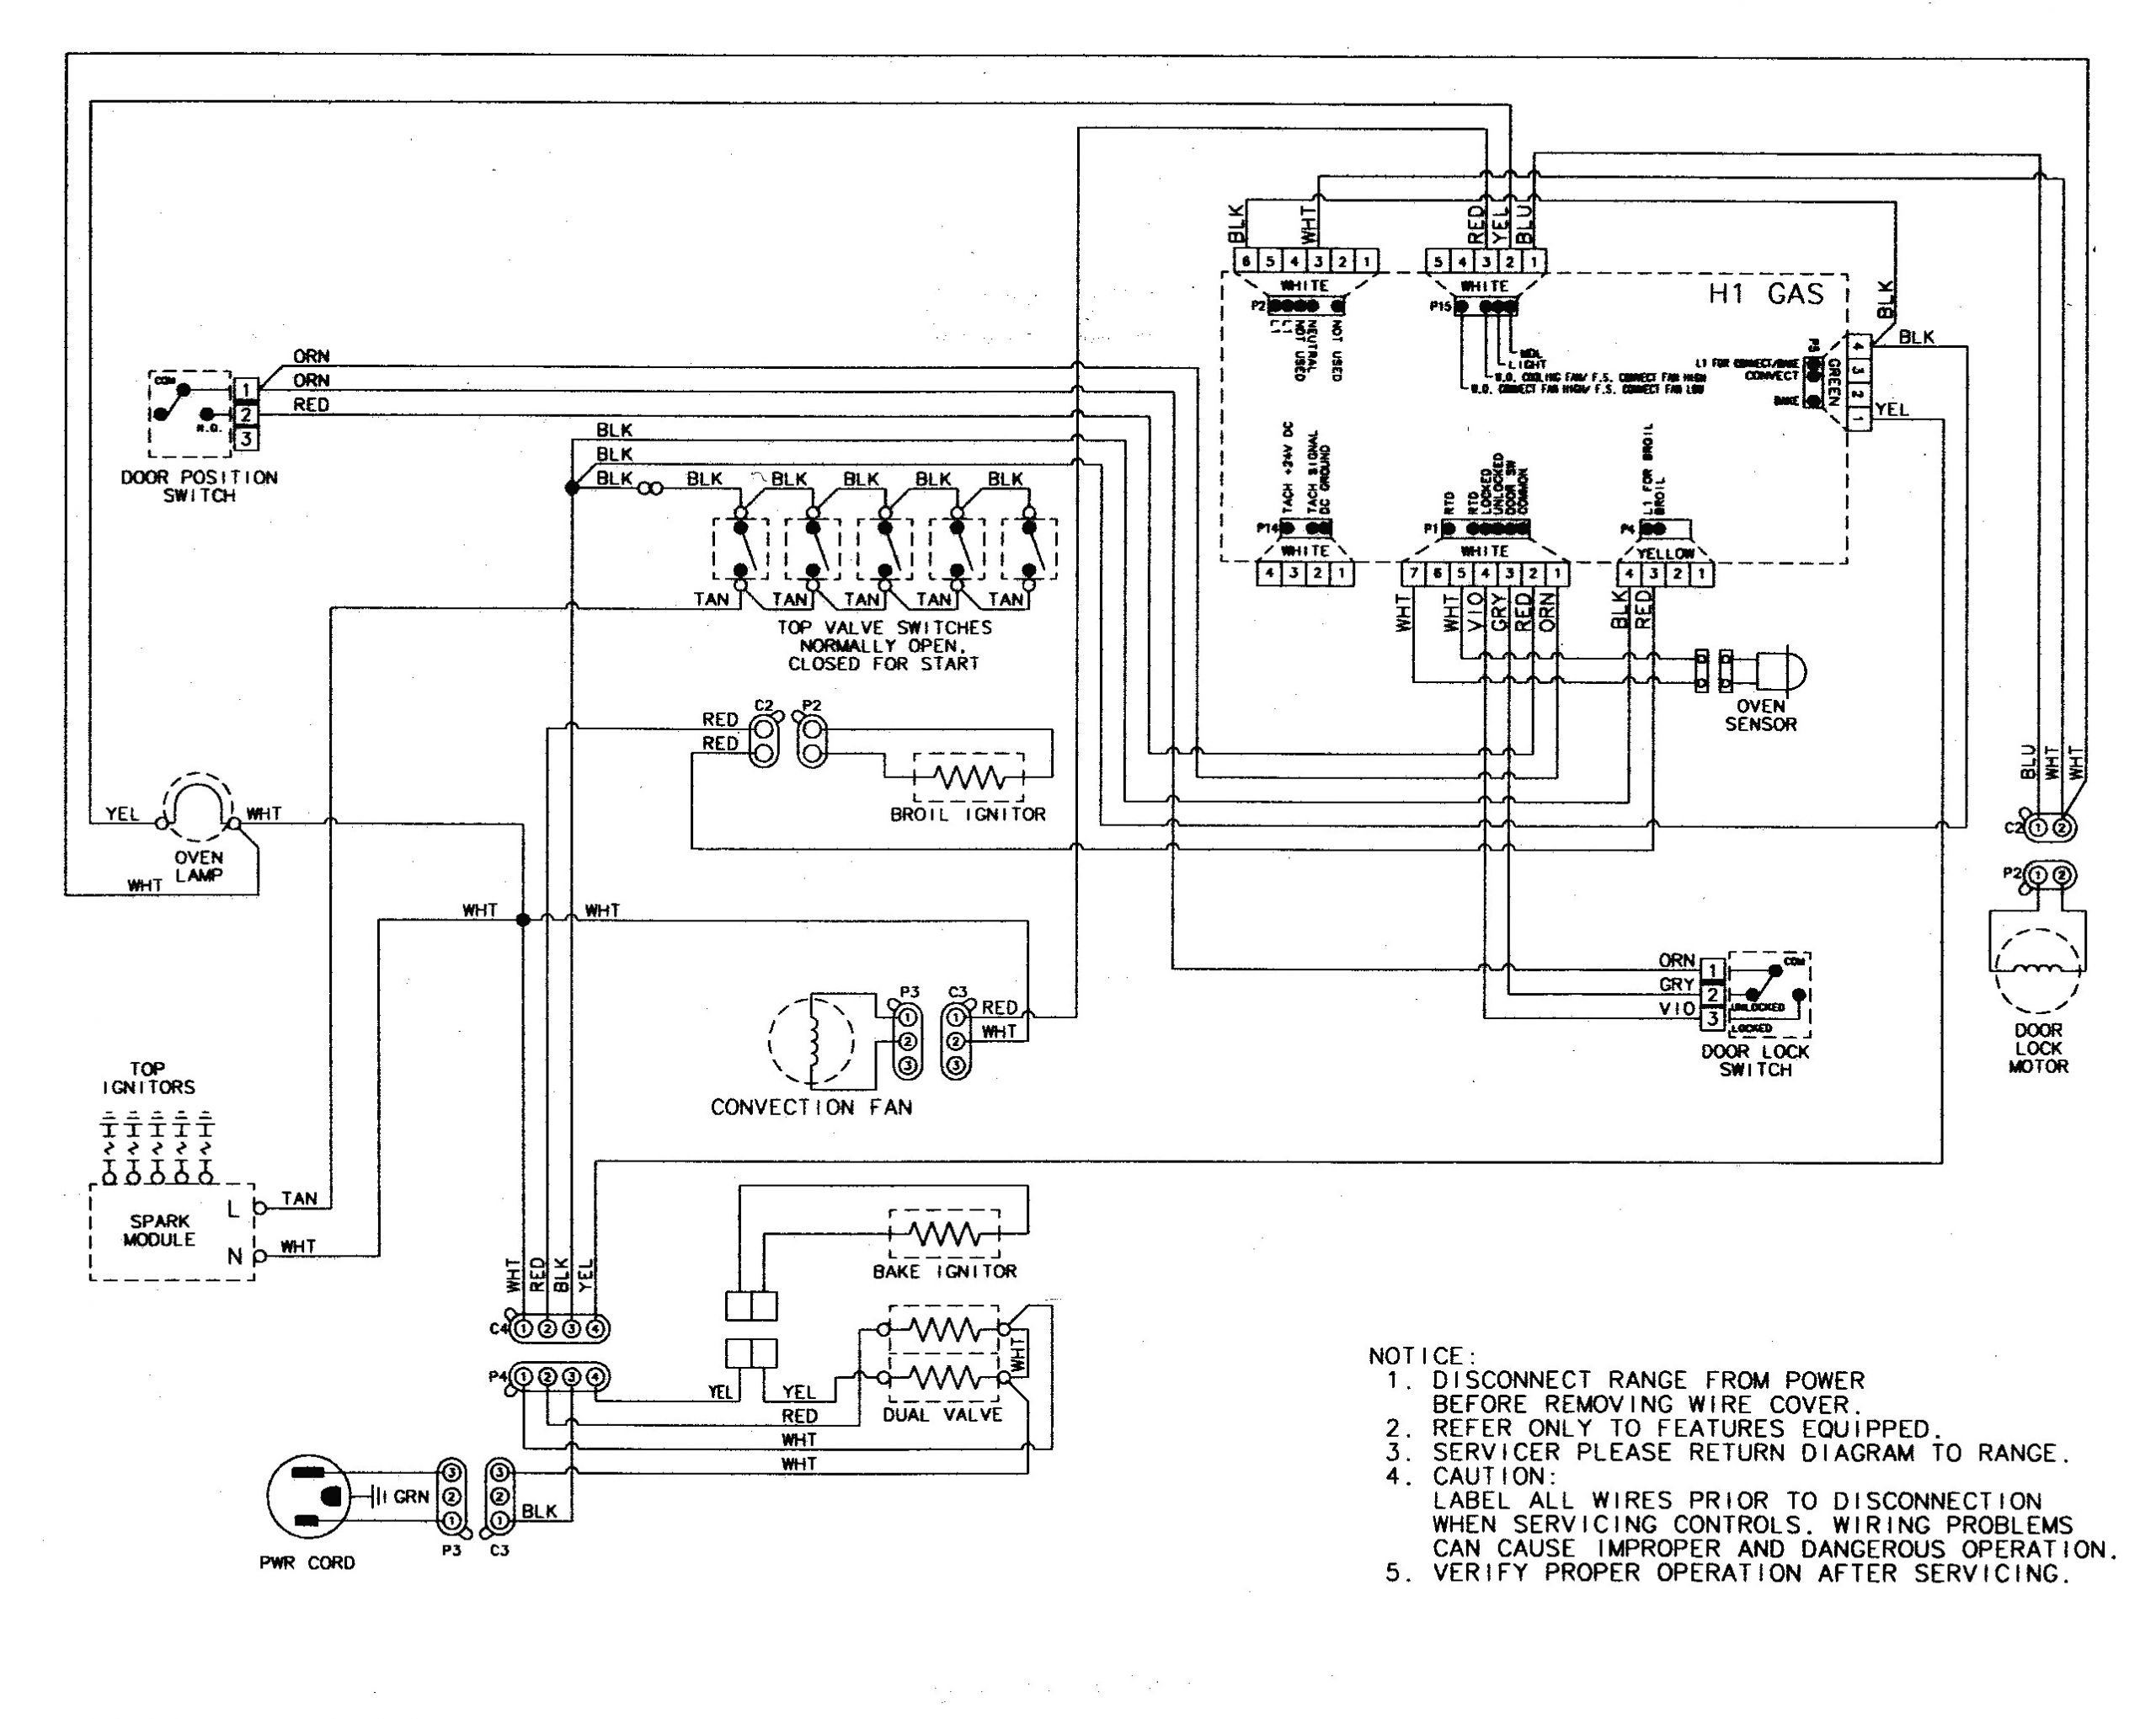 amana ptac wiring diagram awesome heat pump thermostat wiring diagram lovely 18 amana diagra of amana ptac wiring diagram jpg